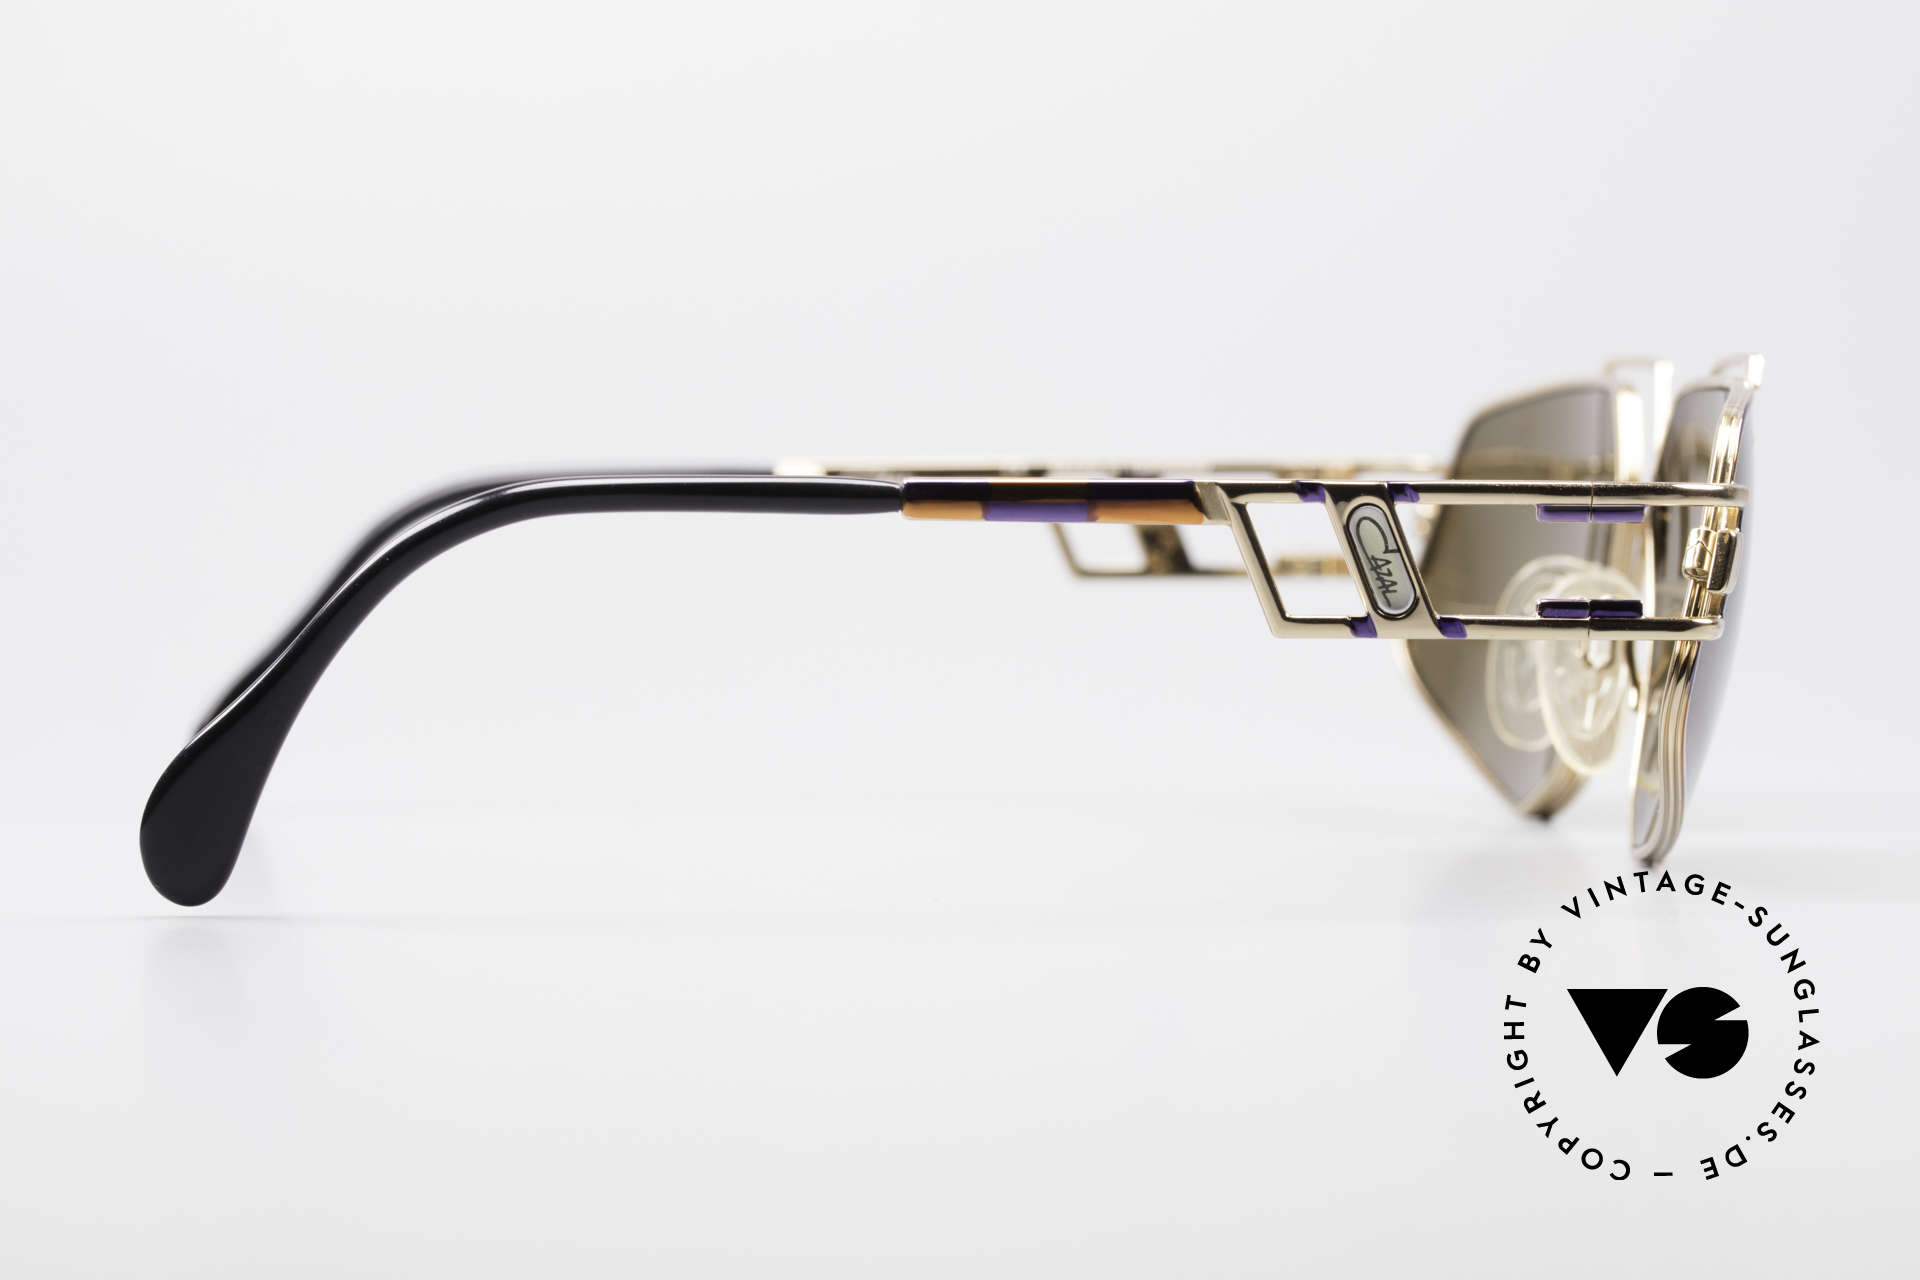 Cazal 961 Vintage Designer Sunglasses, new old stock (like all our rare vintage designer shades), Made for Men and Women